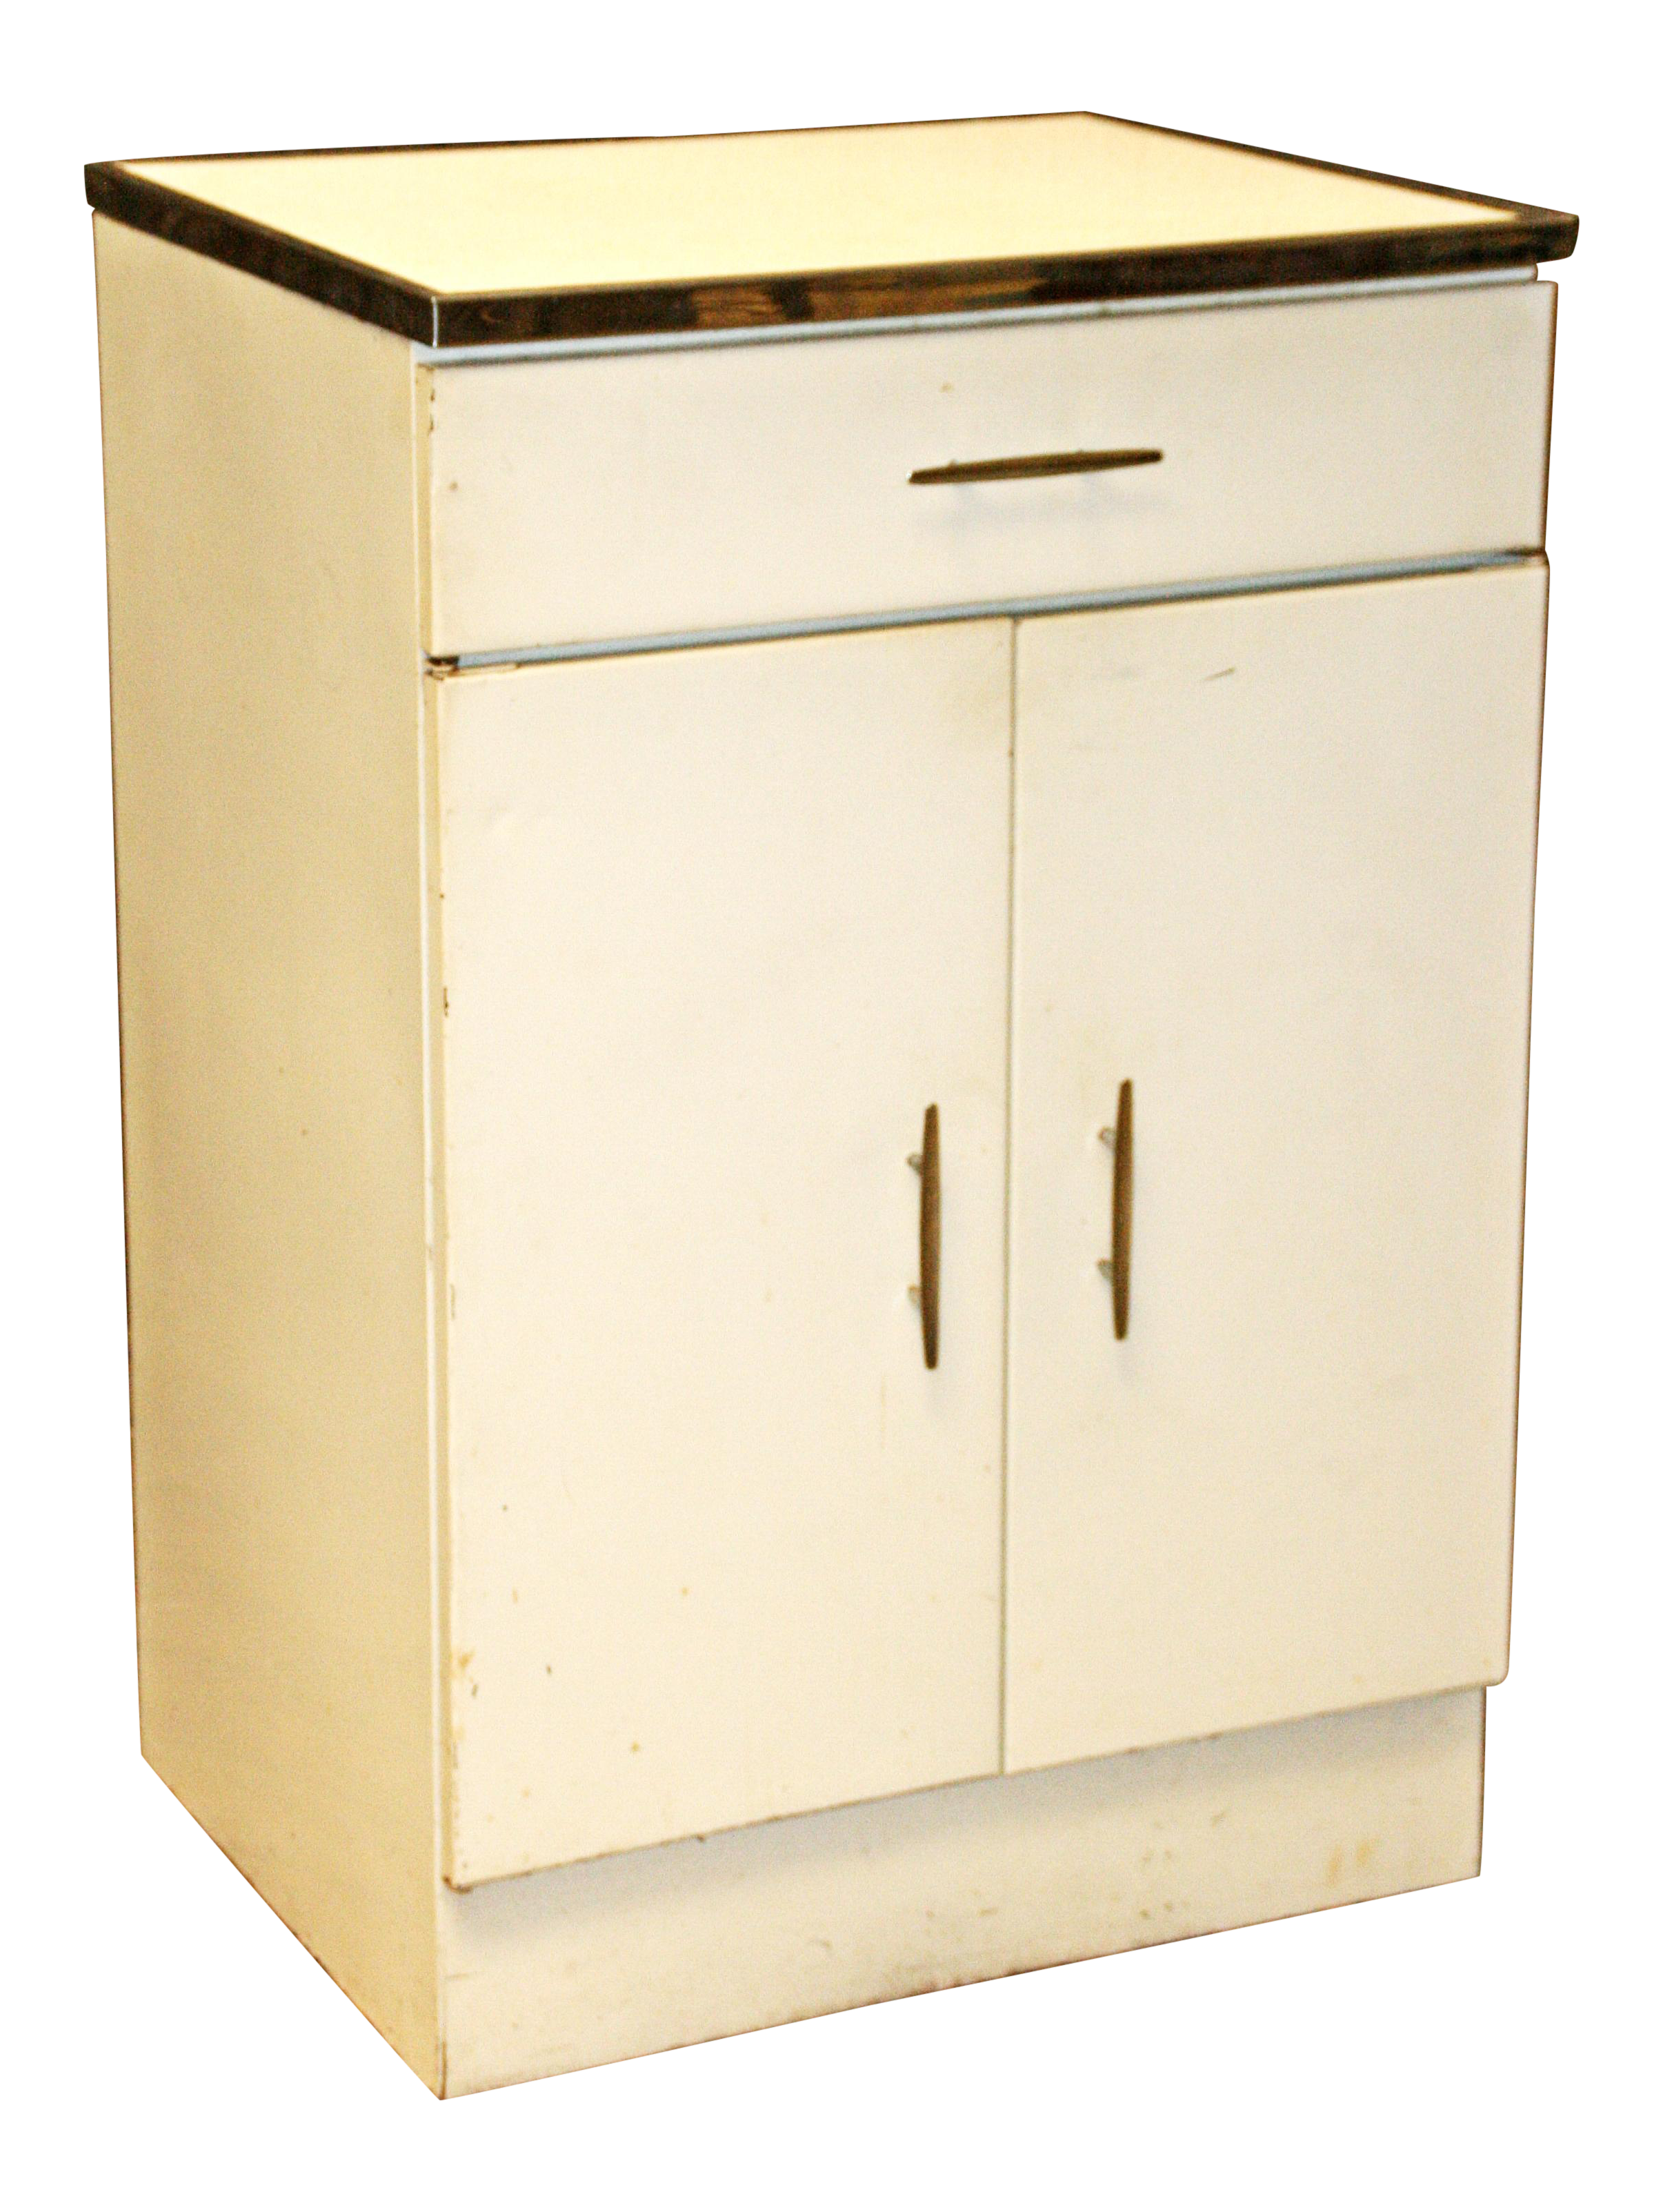 Mid century white metal storage cabinet chairish for Best brand of paint for kitchen cabinets with wire sculpture wall art